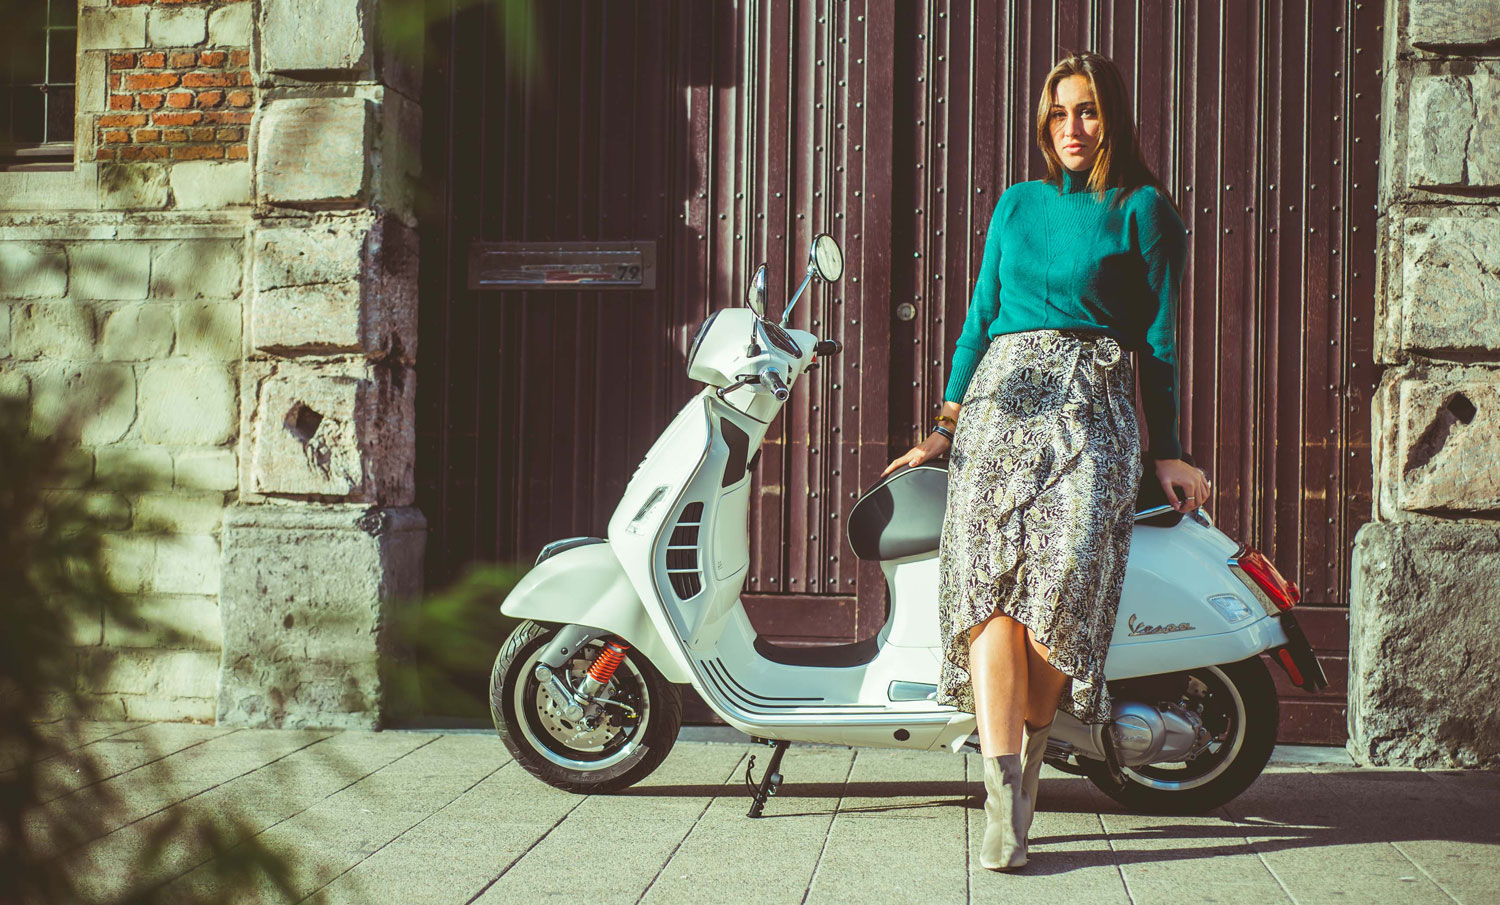 Vespashop-vespa-shop-antwerpen-GTS-FB